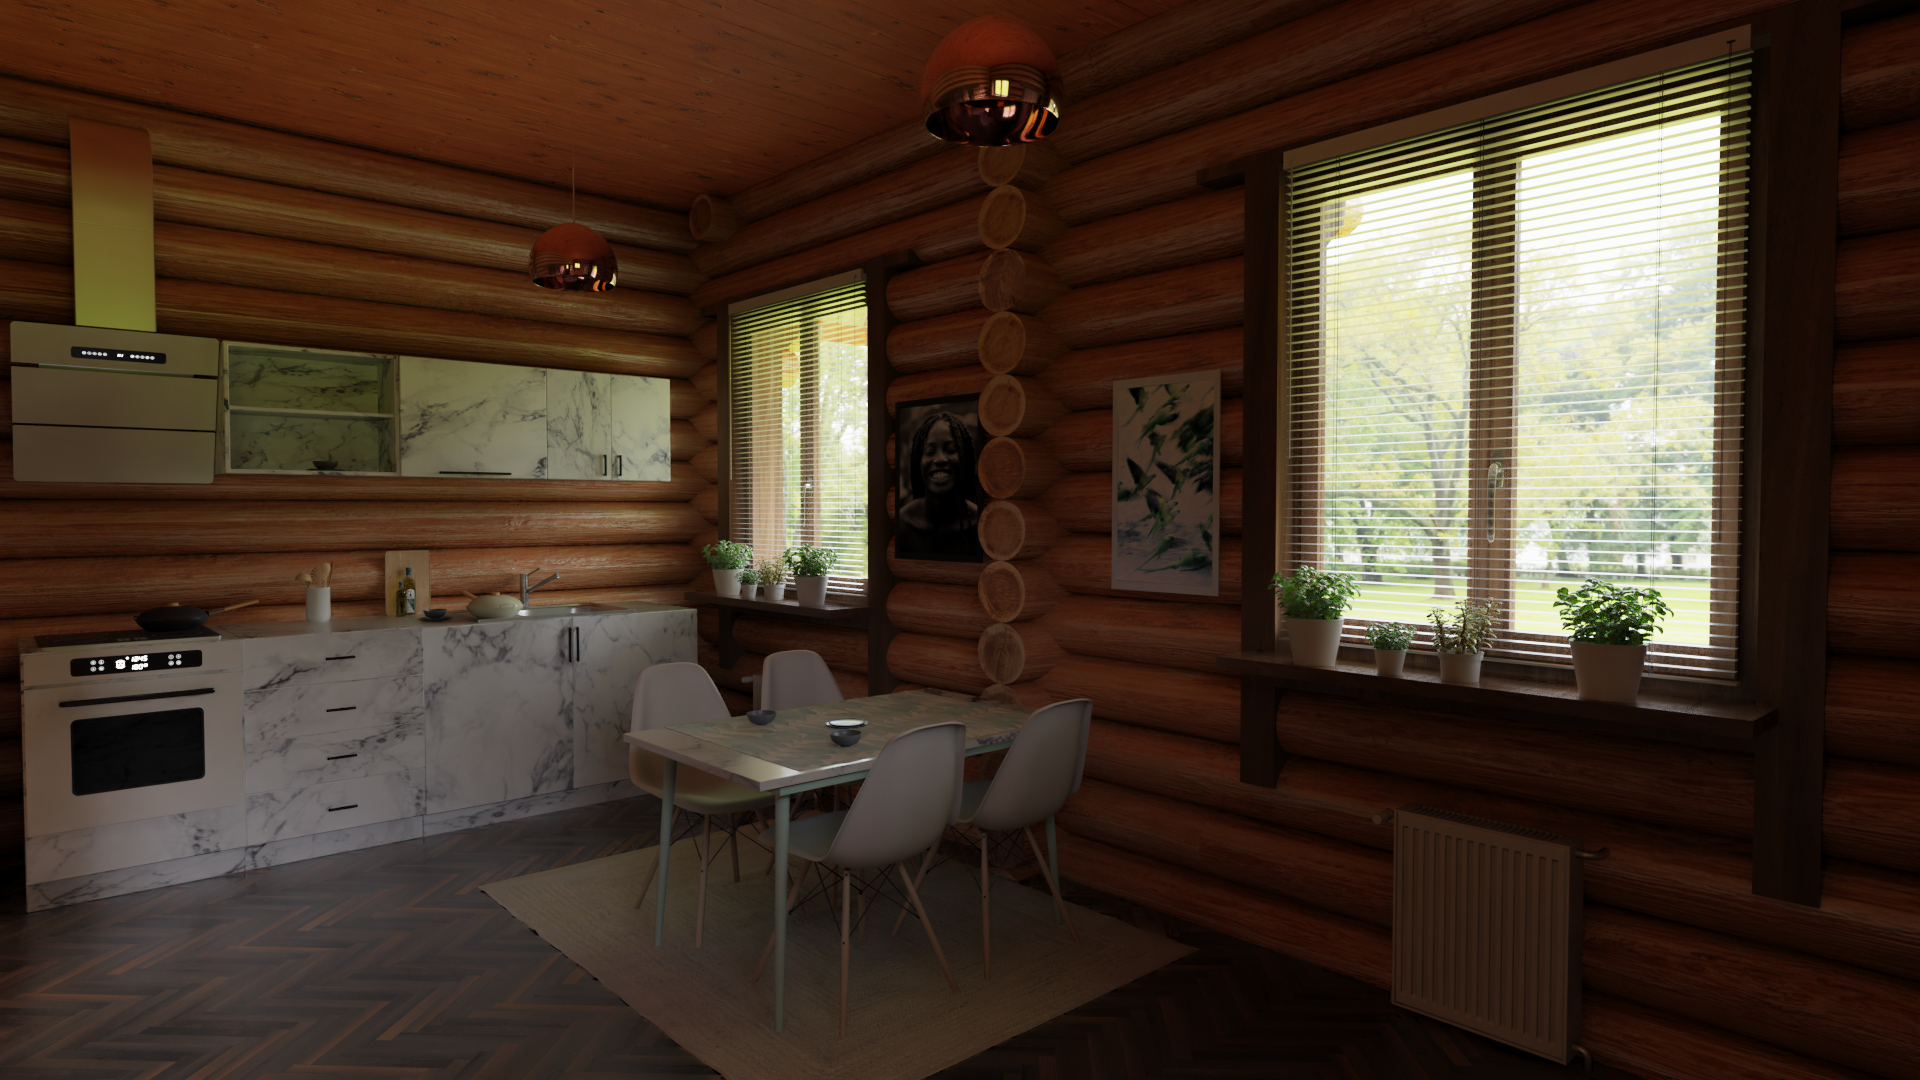 Wooden House in Blender cycles render image